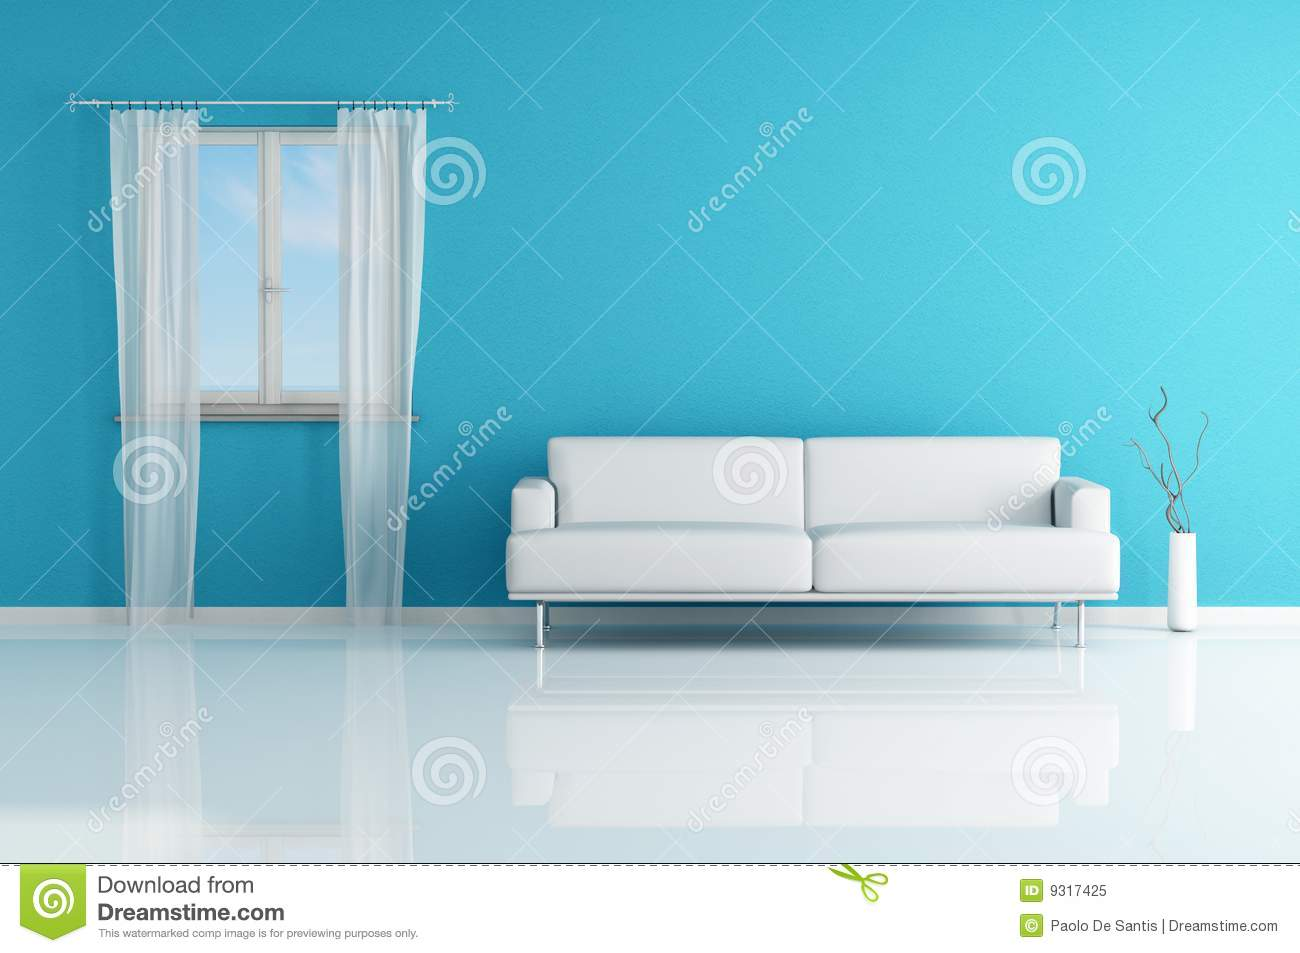 Wall Murals For Baby Rooms White Sofa In A Blue Room Royalty Free Stock Photo Image